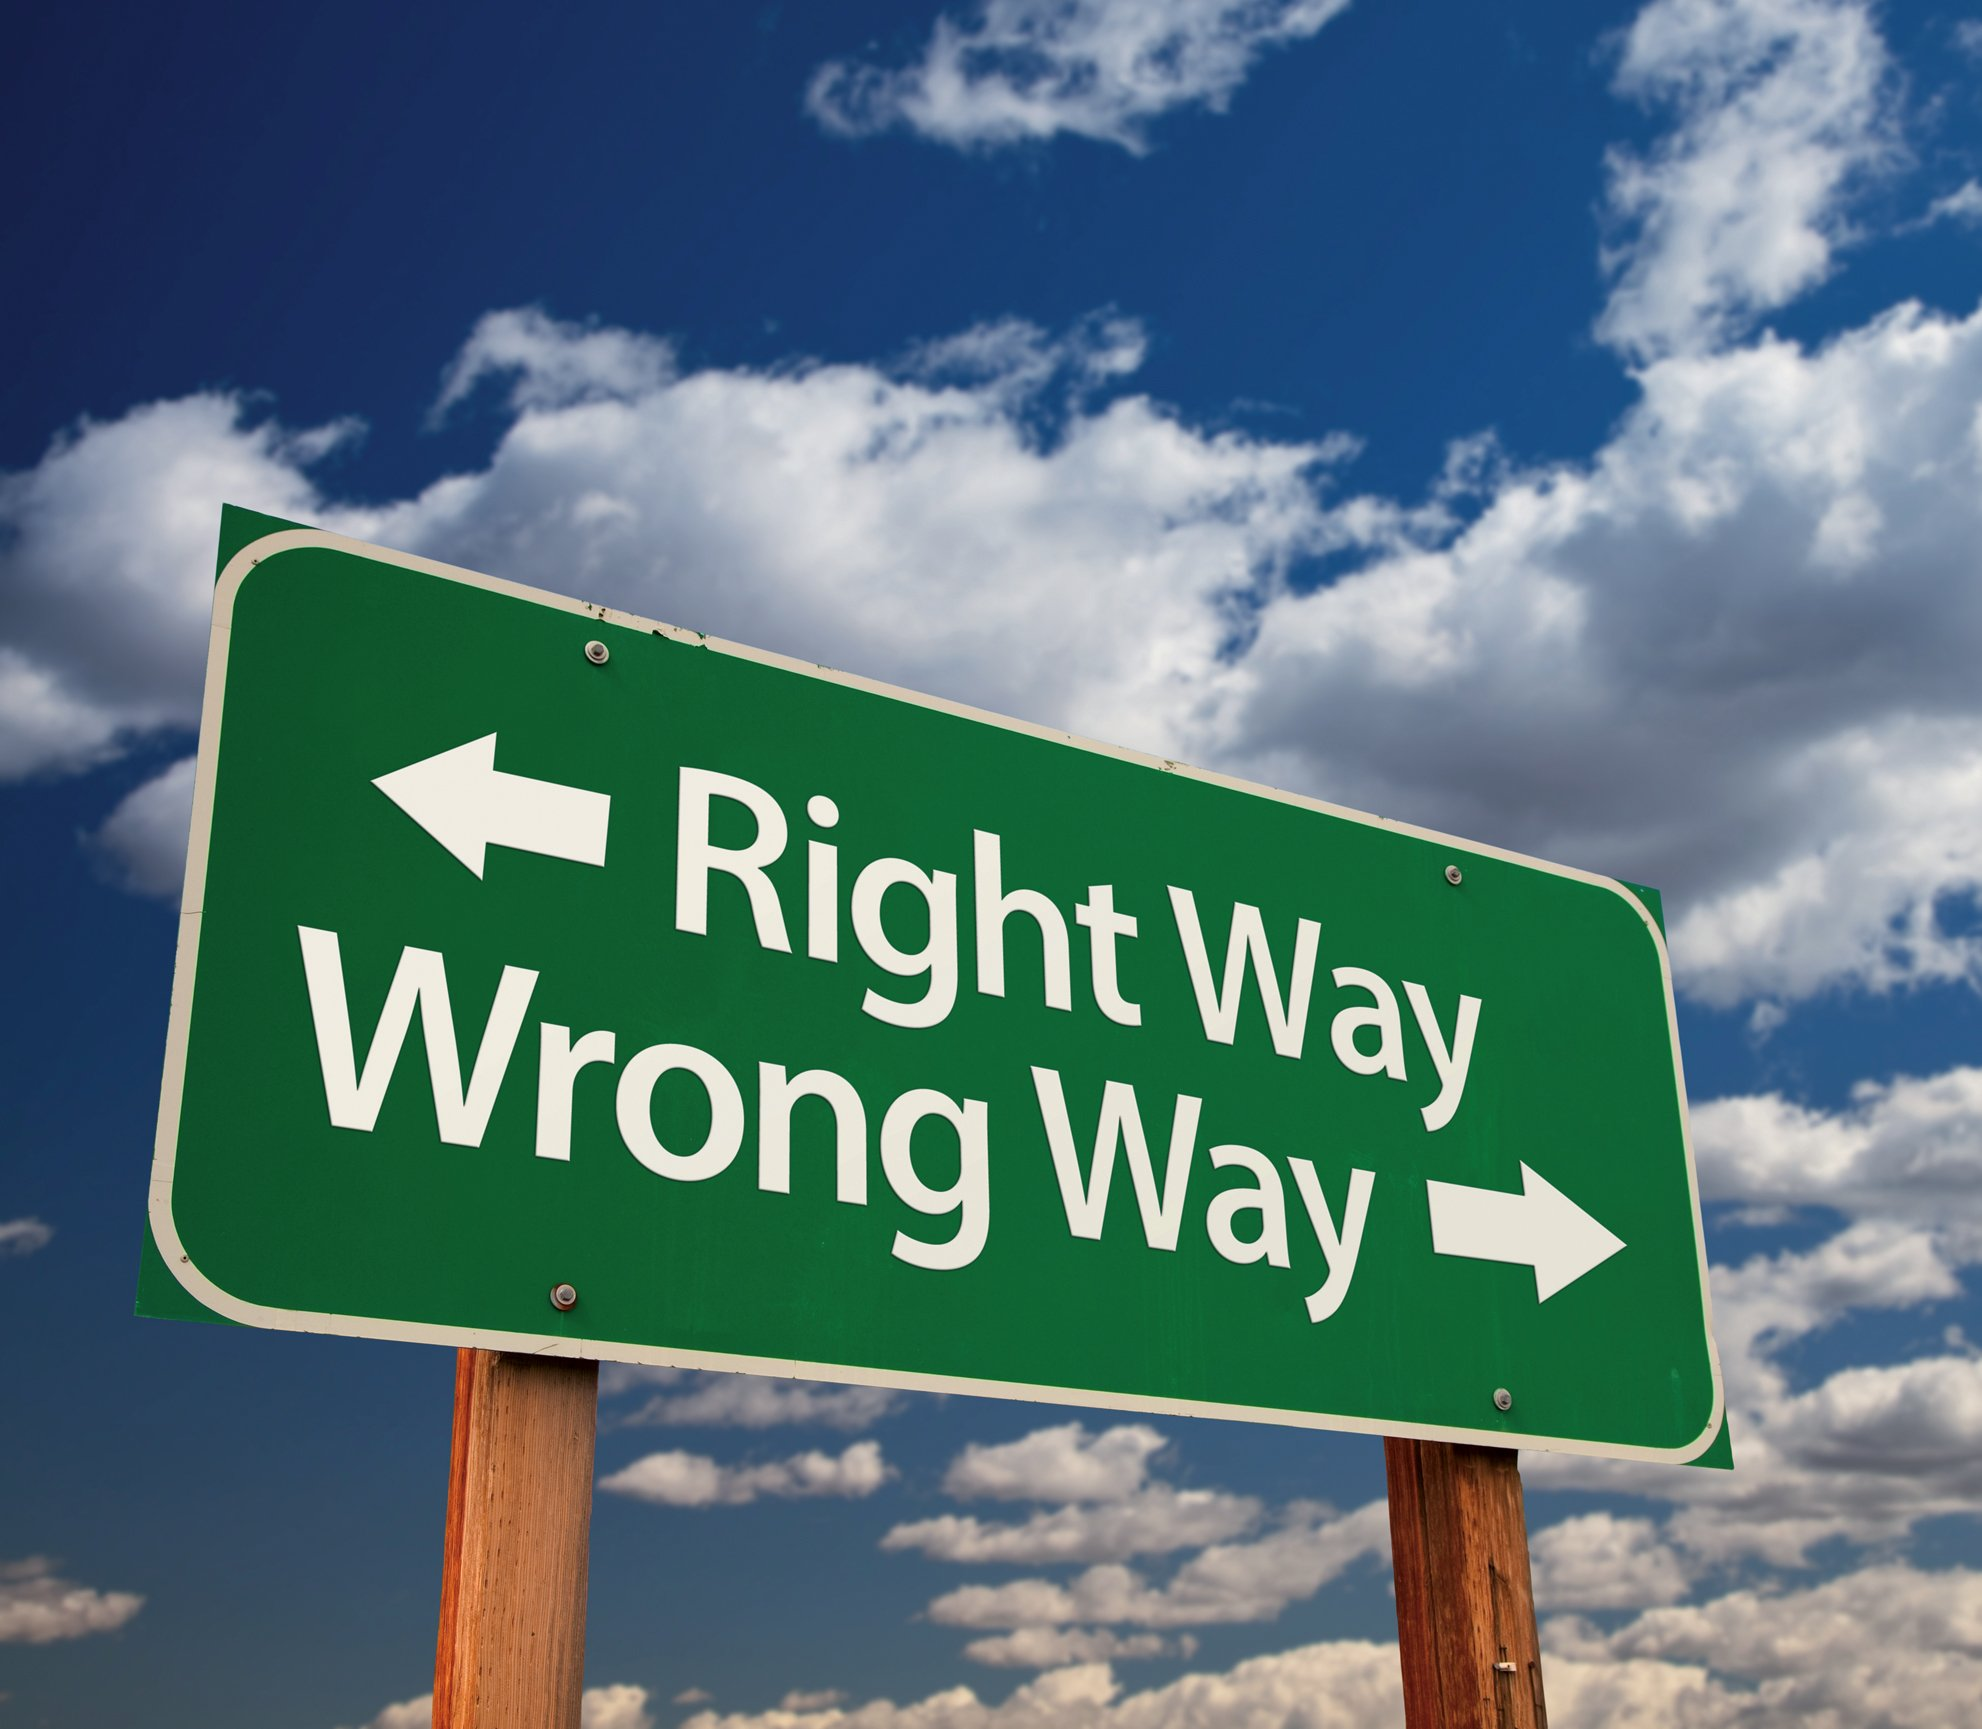 Wrong way Vs. Right way